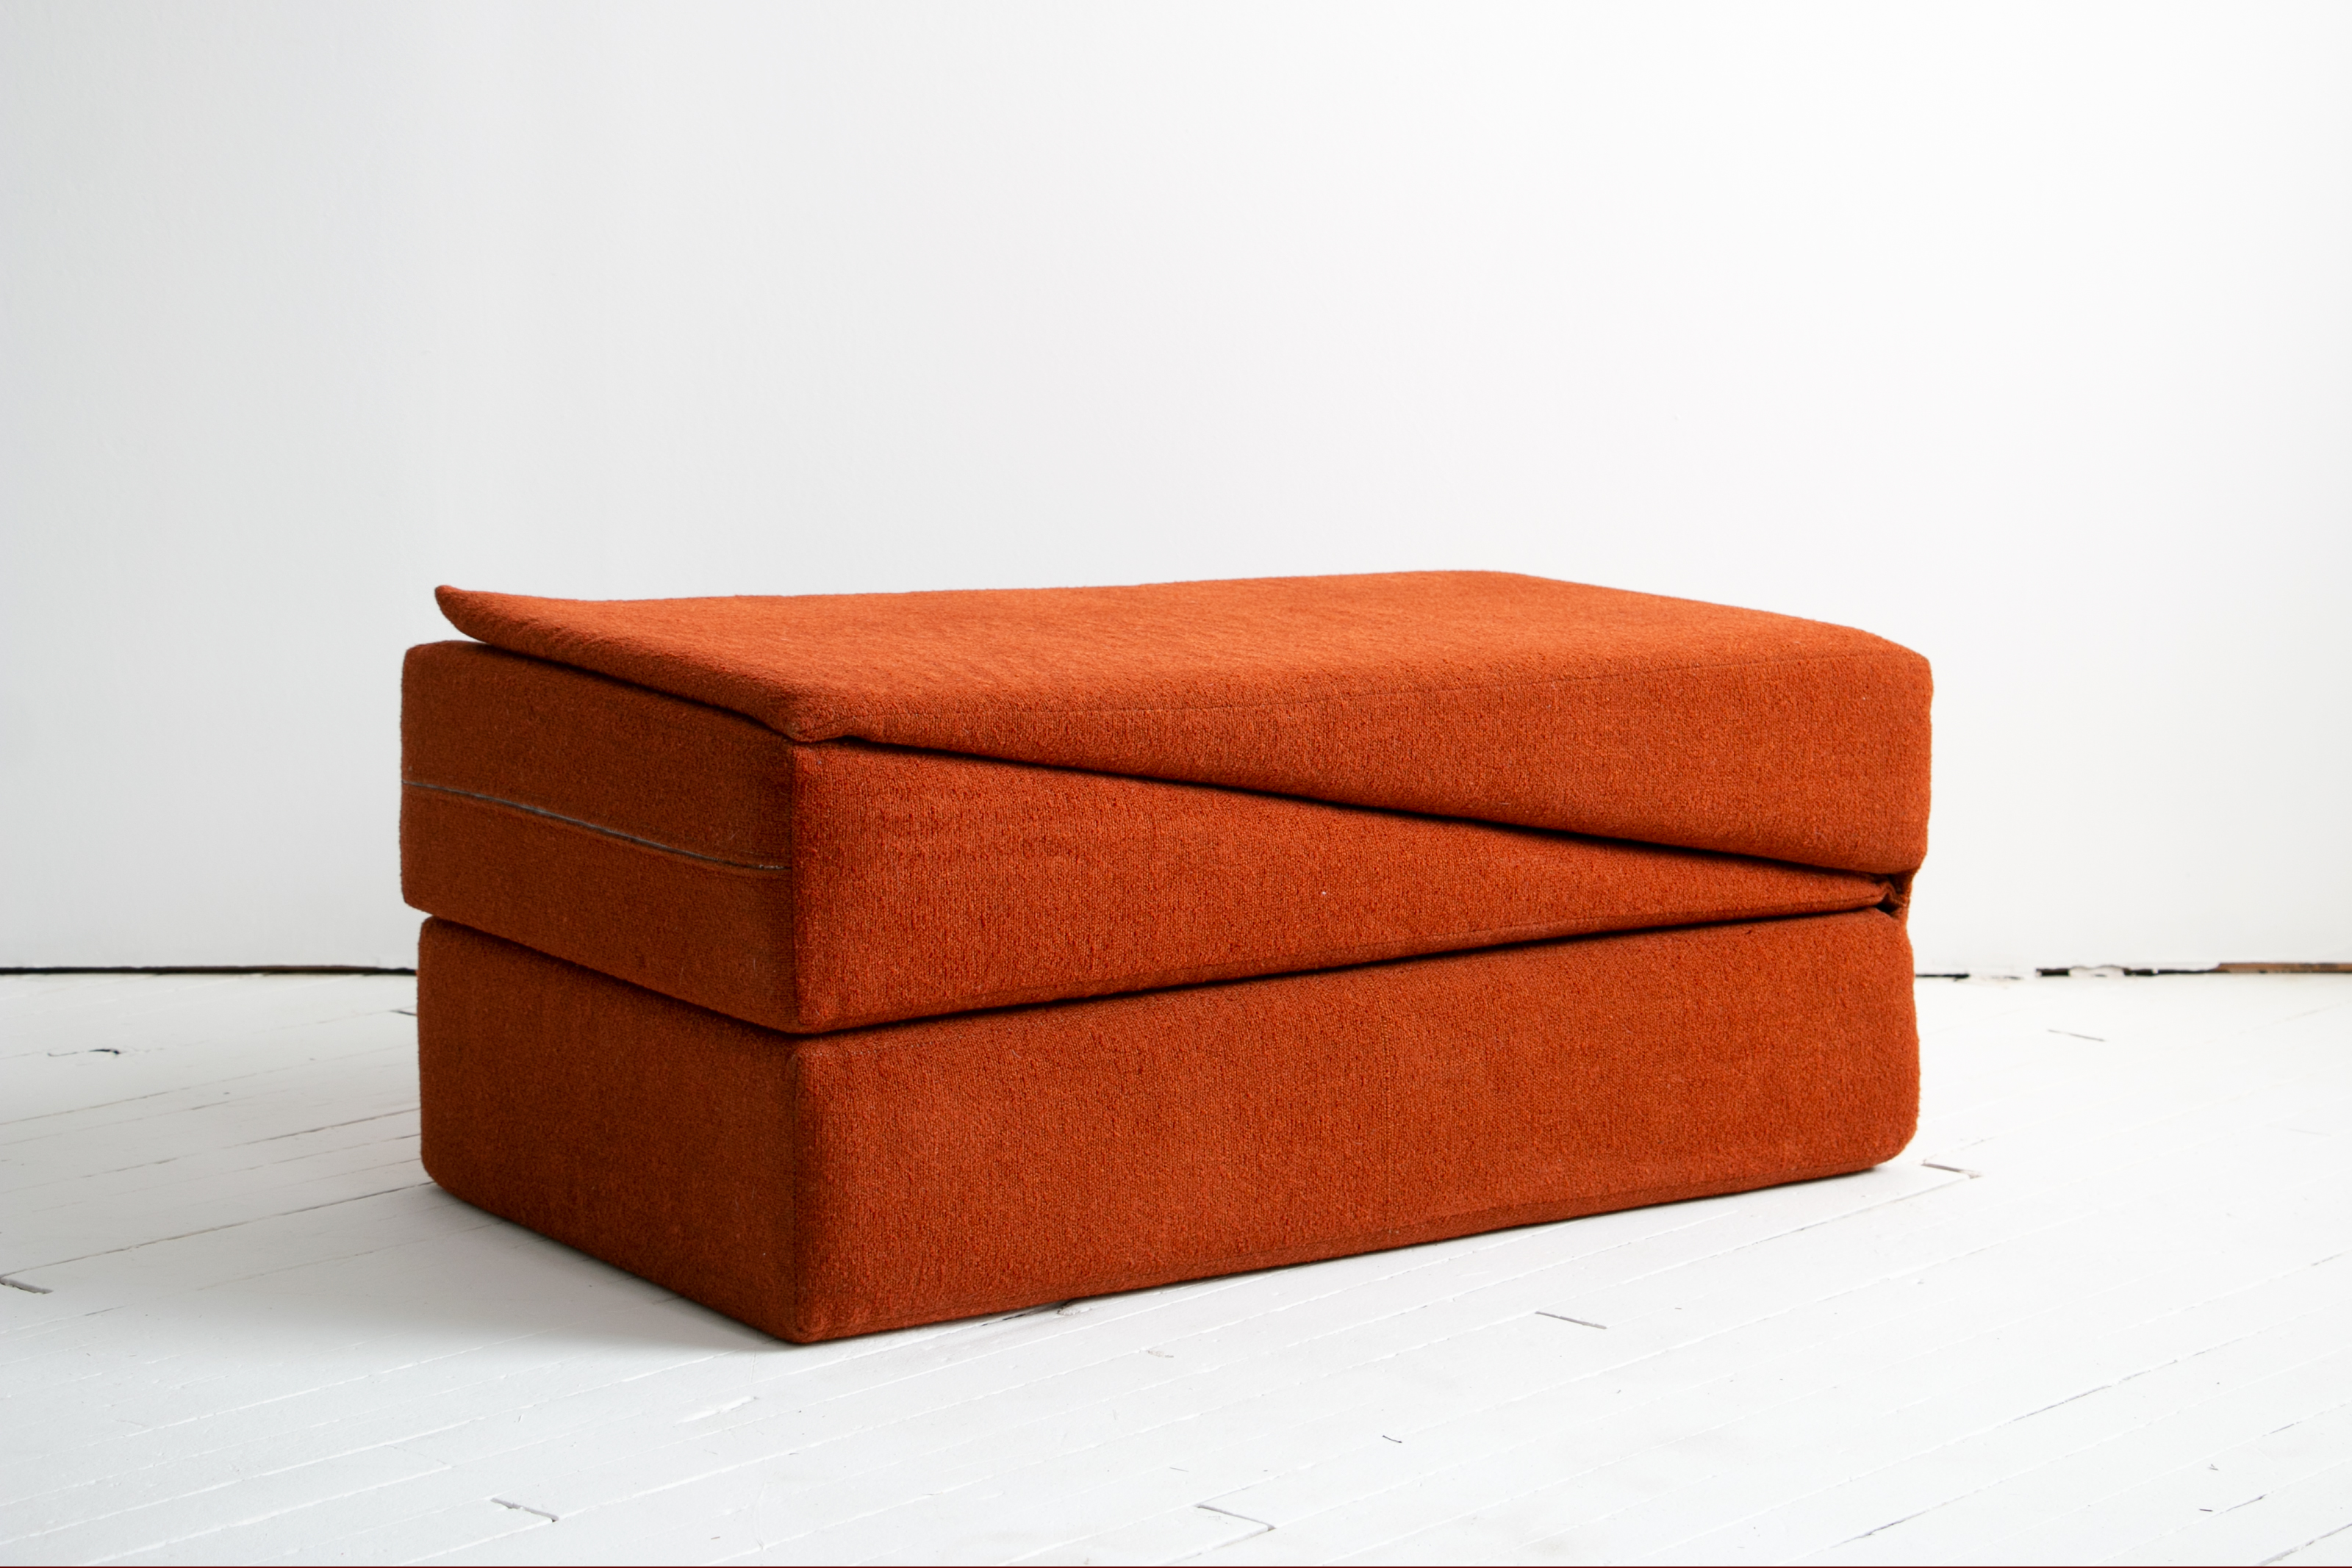 1970's Yoga Convertible Inversion Cushion, Gravity Awareness Centers, Palm Springs, Orange Shag